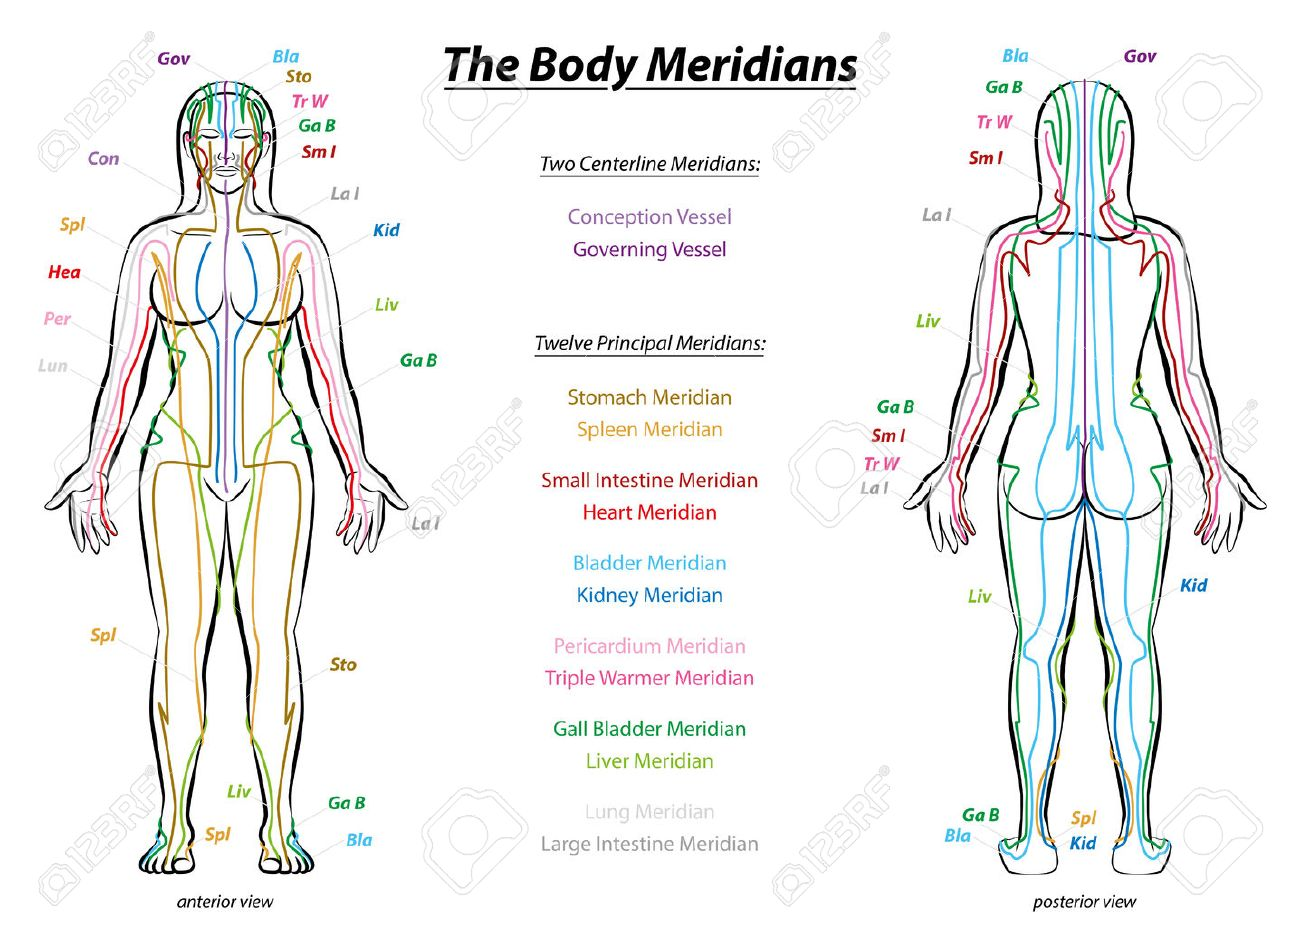 meridian system chart female body with principal and centerline rh 123rf com chinese medicine meridians diagram chinese meridians chart